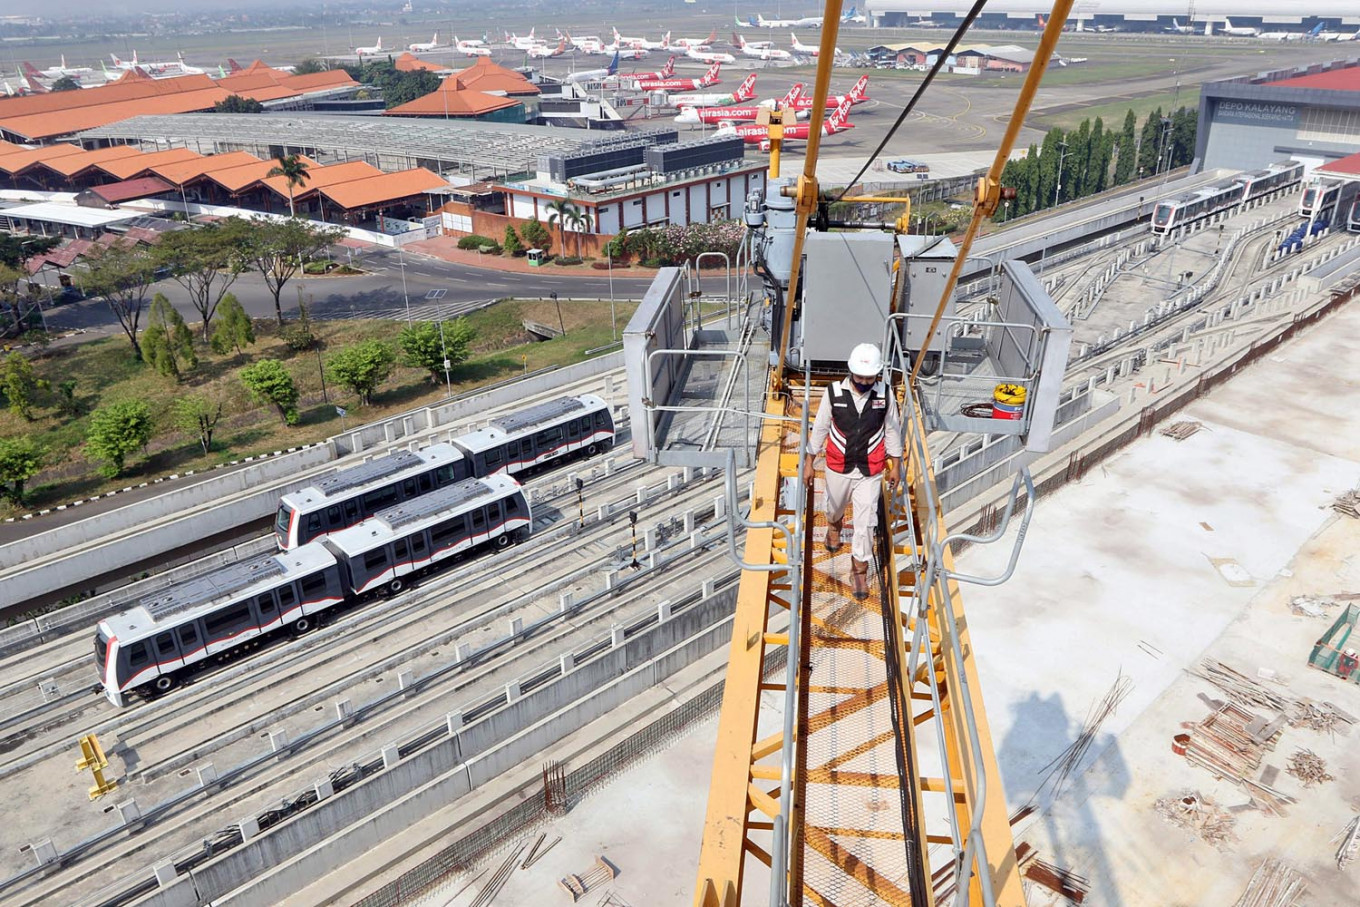 A worker inspects a crane at the construction site of Soekarno-Hatta International Airport's integrated building in Tangerang, Banten, on July 29. The project, comprising a building that is connected to the main airport building, costs Rp 691 billion (US$47.2 million) and is set to be completed at the end of 2020. JP/Dhoni Setiawan